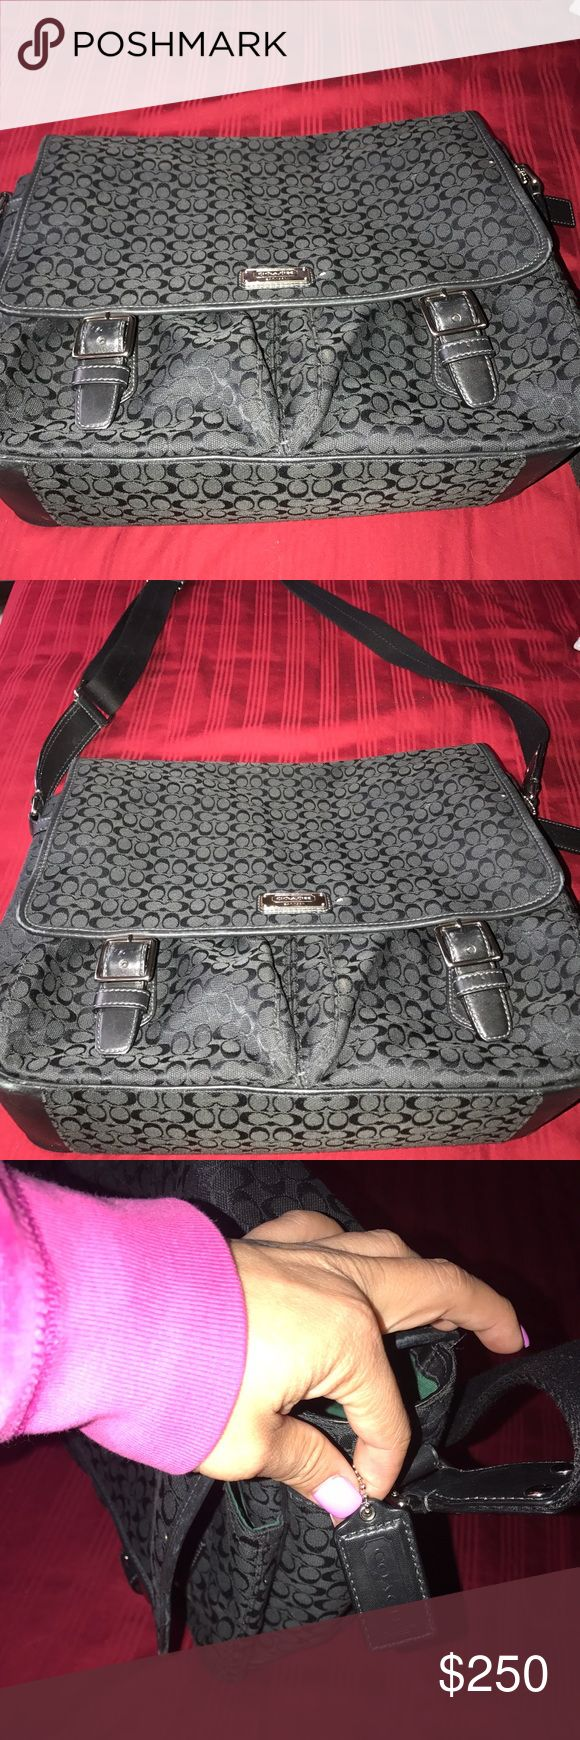 Authentic Coach Messenger Bag Authentic Coach messenger bag. It has a lot of room I've only used it a few times for school. This bag can fit a Mac Laptop and many more. It has two small pockets in front.. Coach Bags